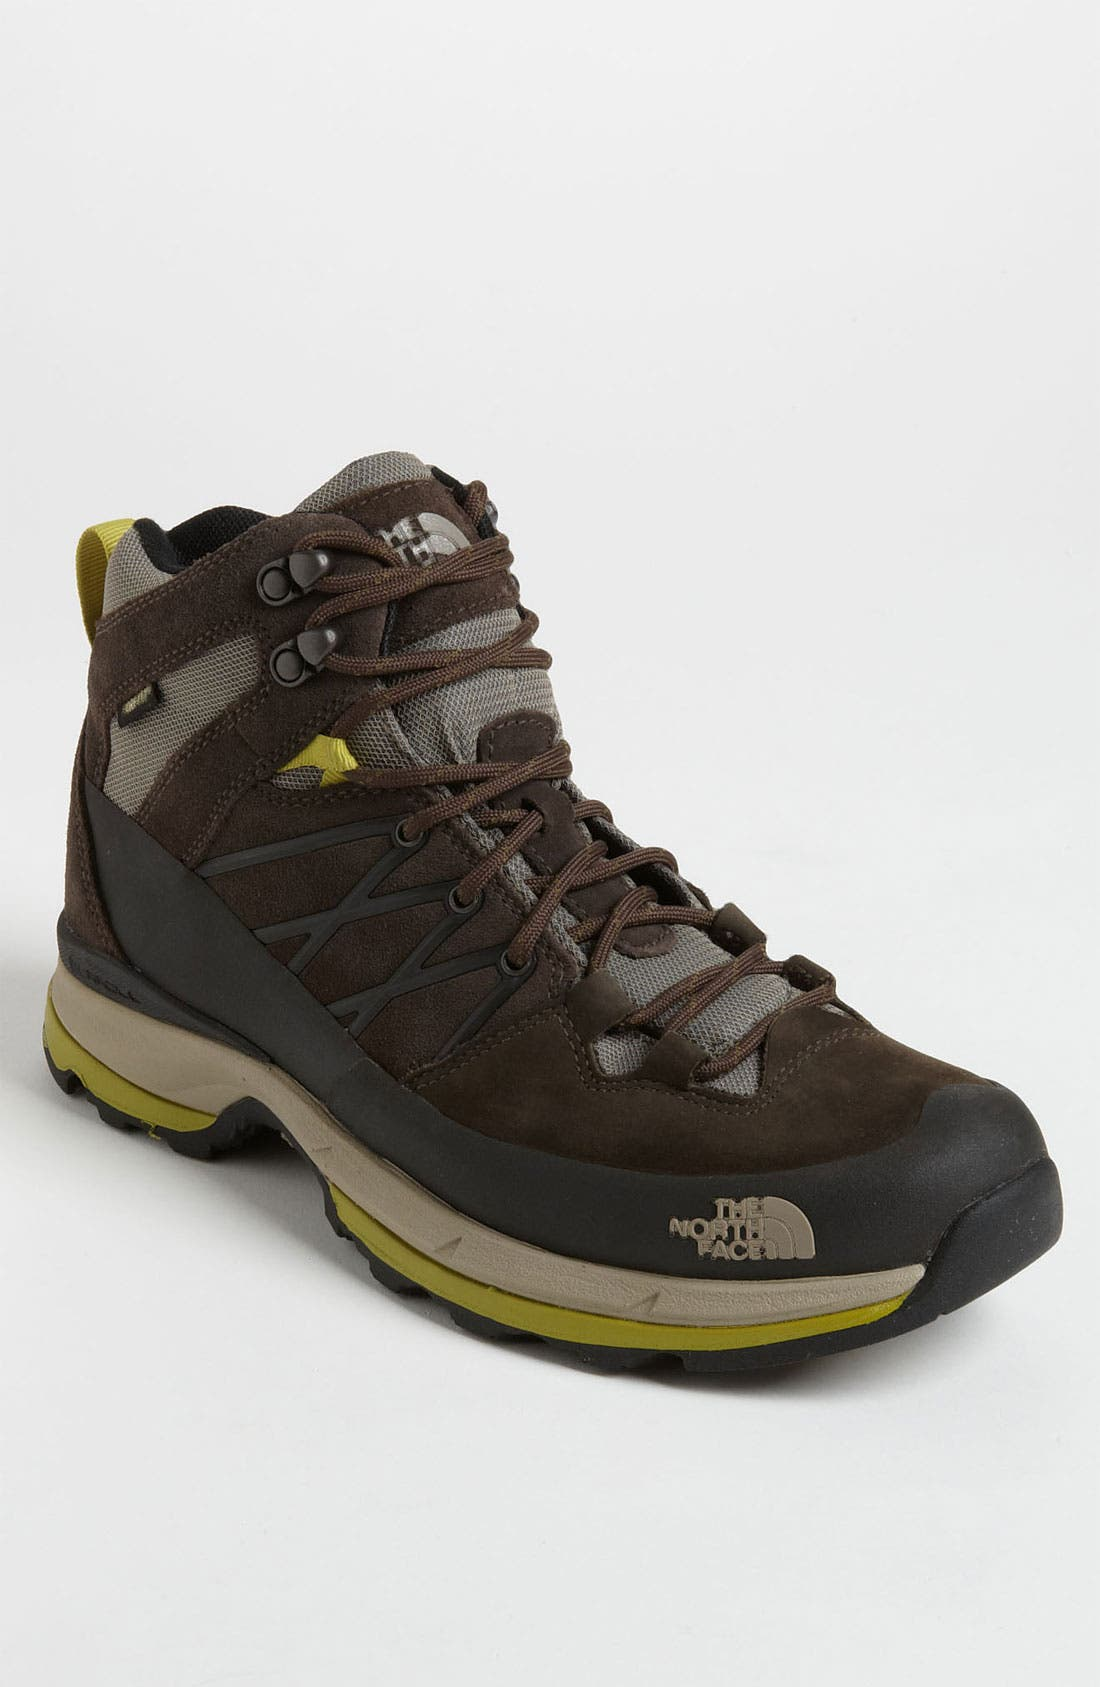 Alternate Image 1 Selected - The North Face 'Wreck Mid GTX' Hiking Boot